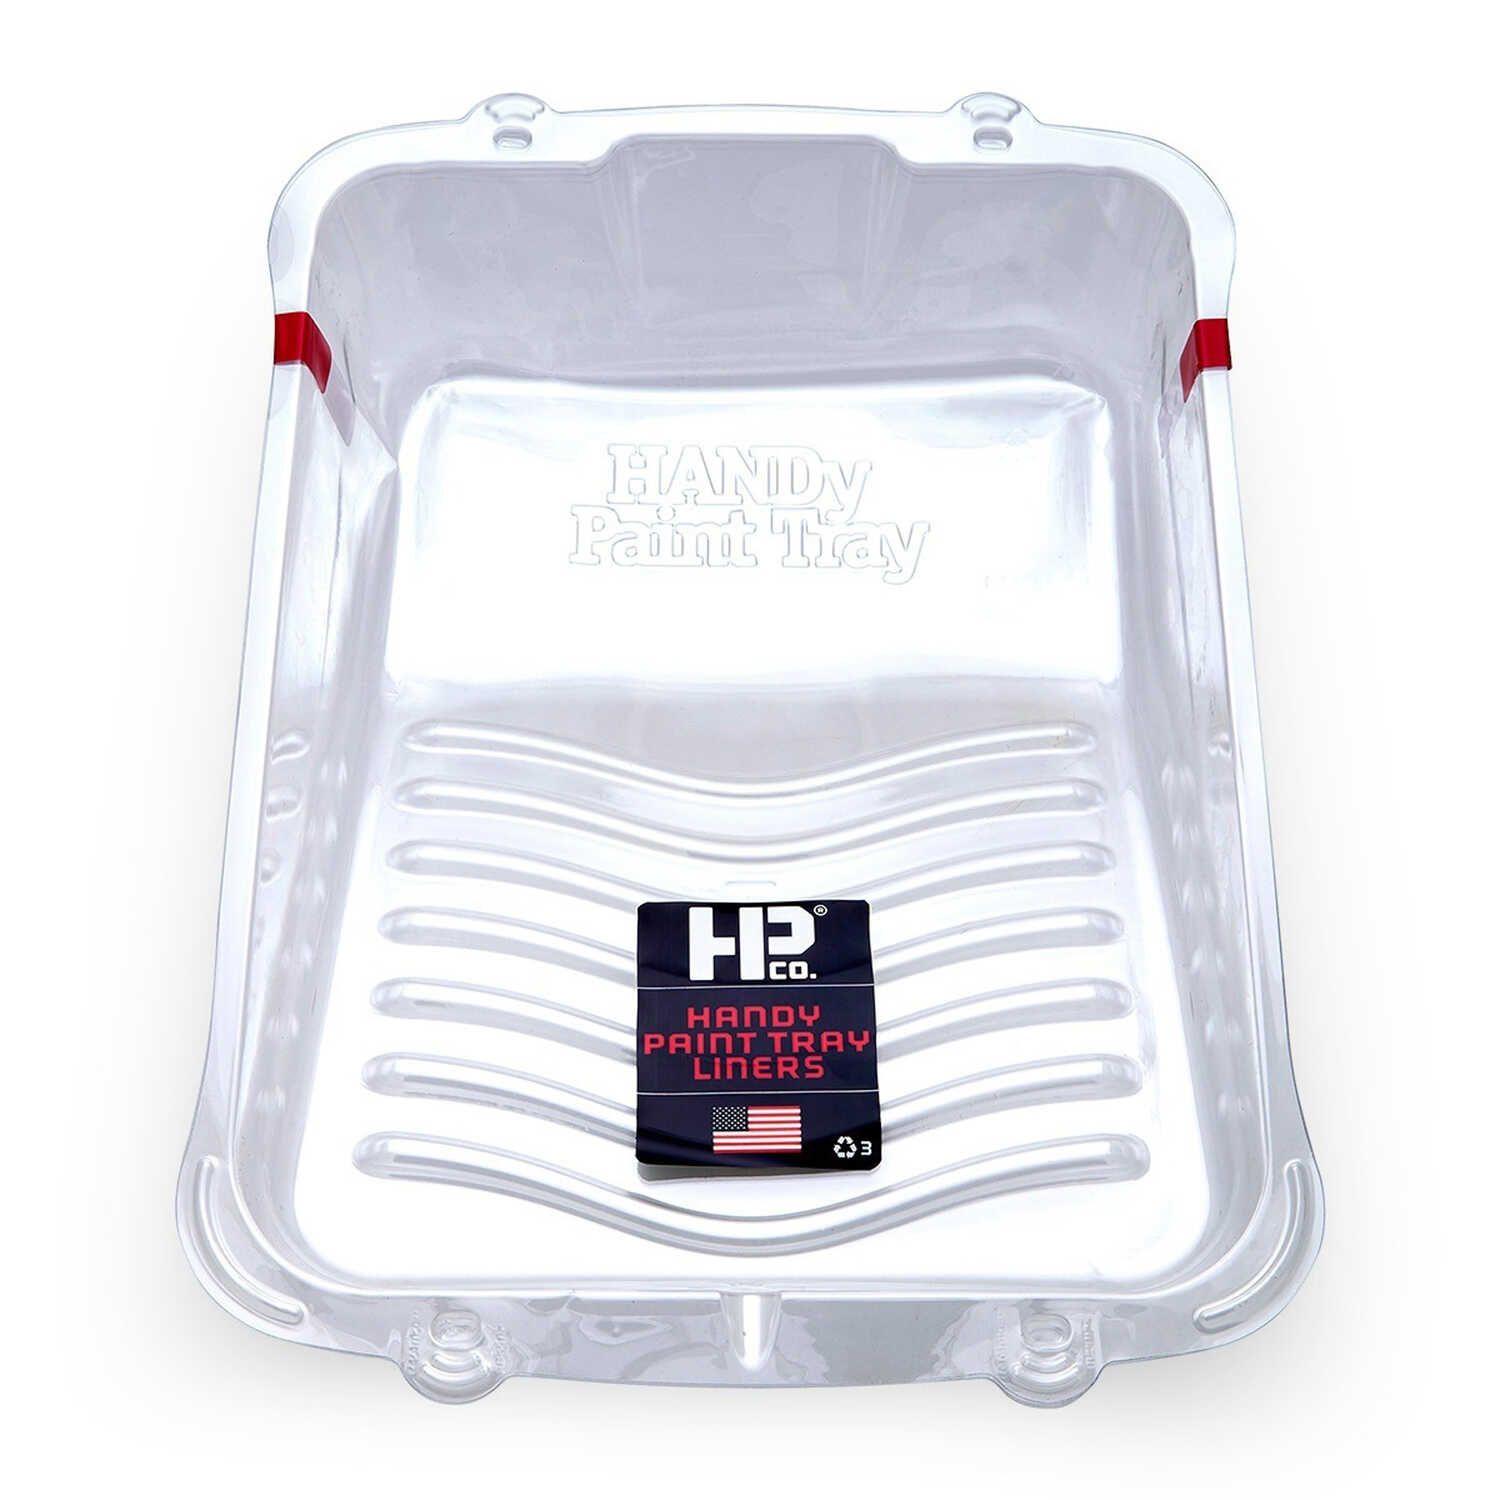 HANDy  Plastic  Disposable Paint Tray Liner  1 gal.